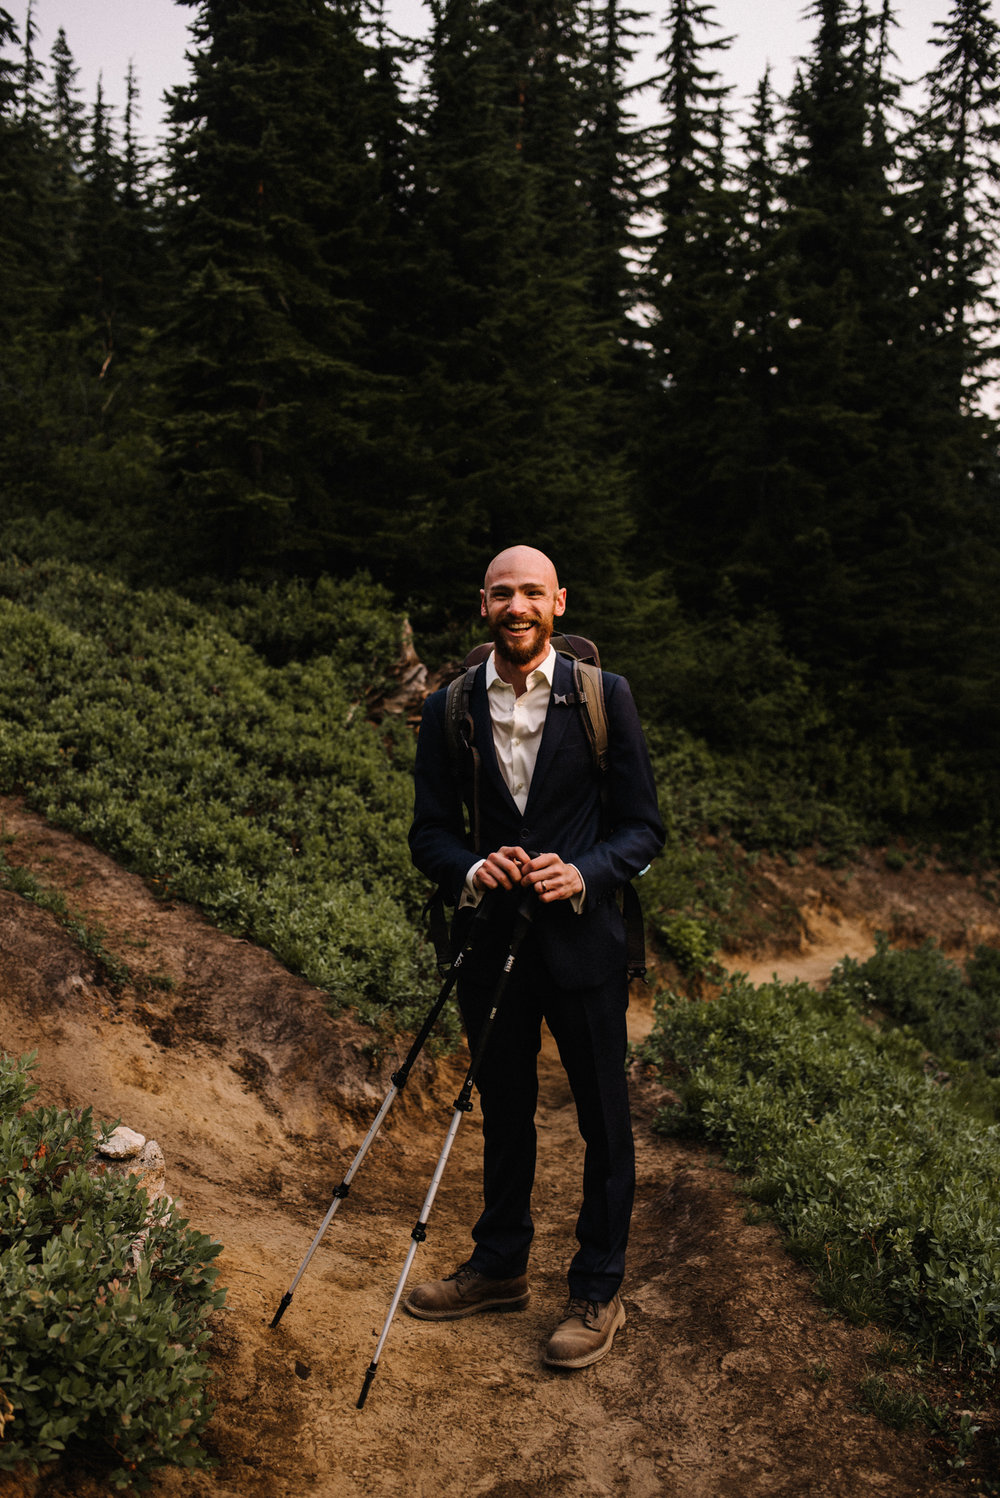 Megan and Andrew Lake Valhalla Washington PNW Adventure Elopement White Sails Creative Sunrise Hike_71.JPG